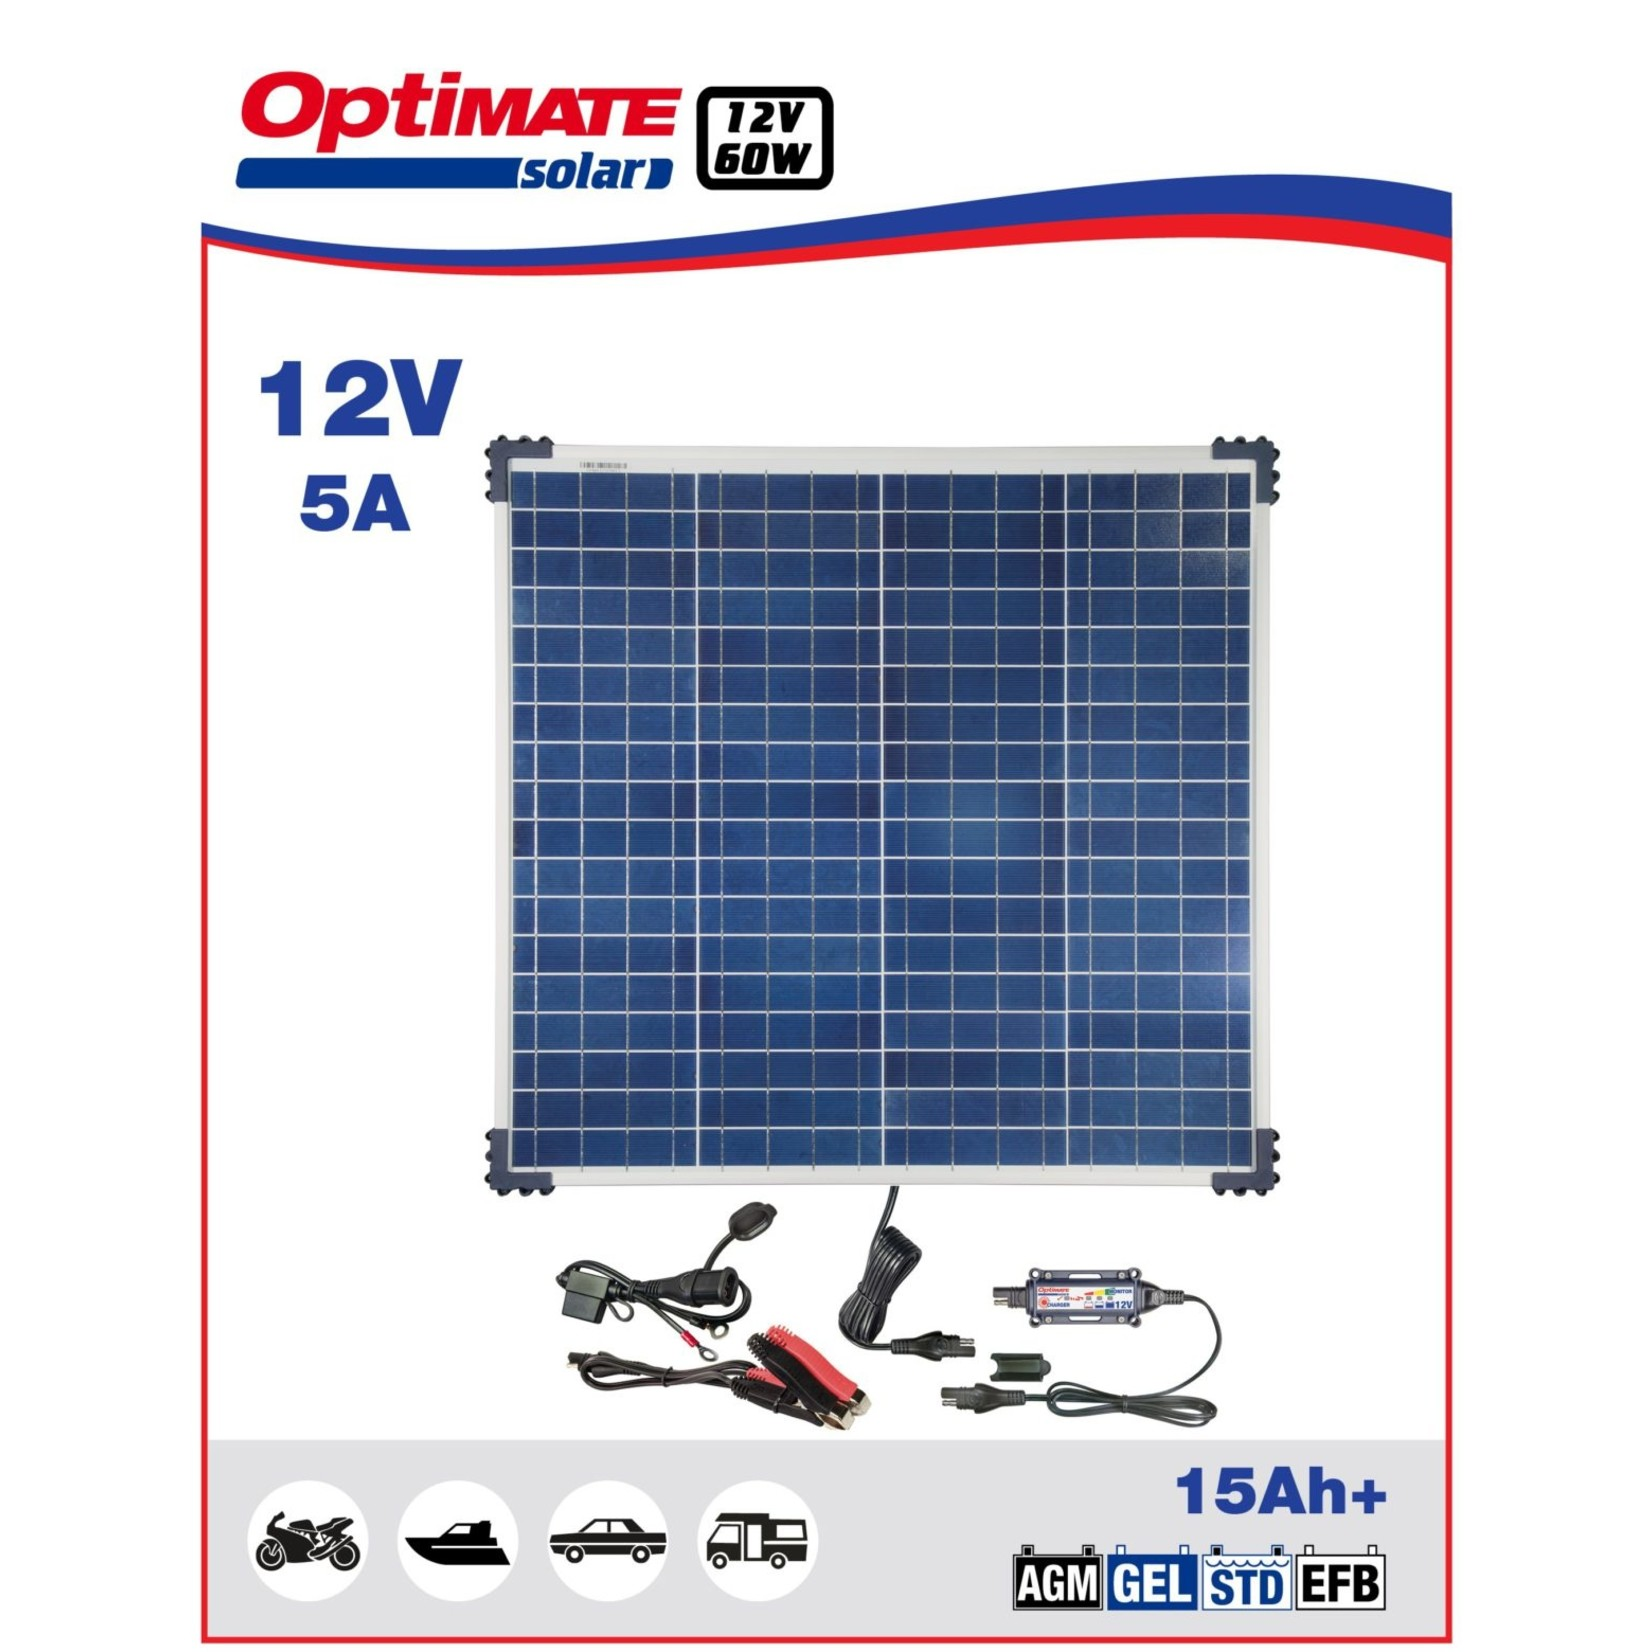 OptiMate Solar 60W - Battery Charger